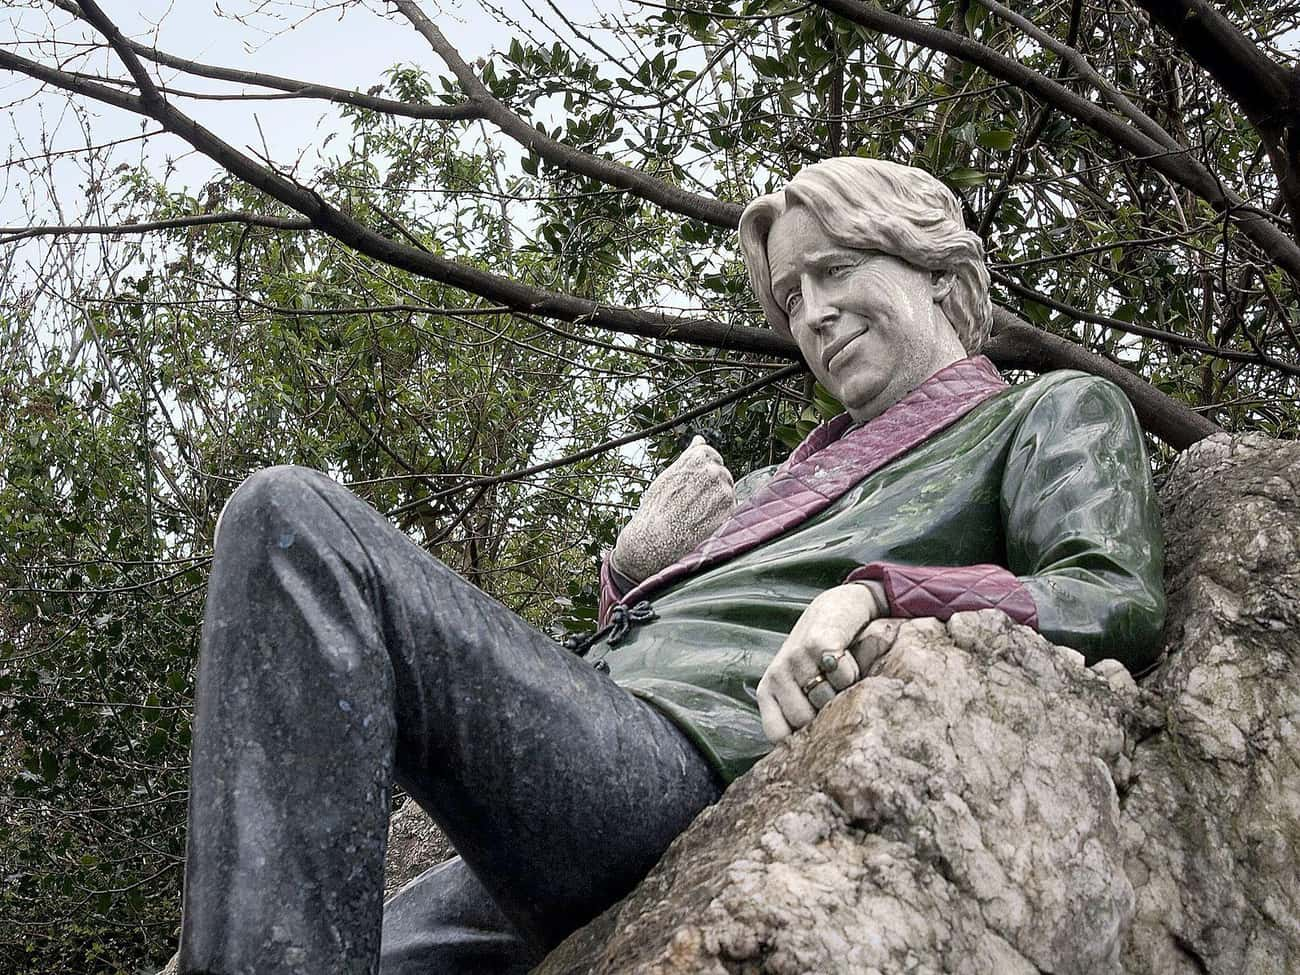 Oscar Wilde - Merrion Square,  is listed (or ranked) 3 on the list The Weirdest Statues of Celebrities